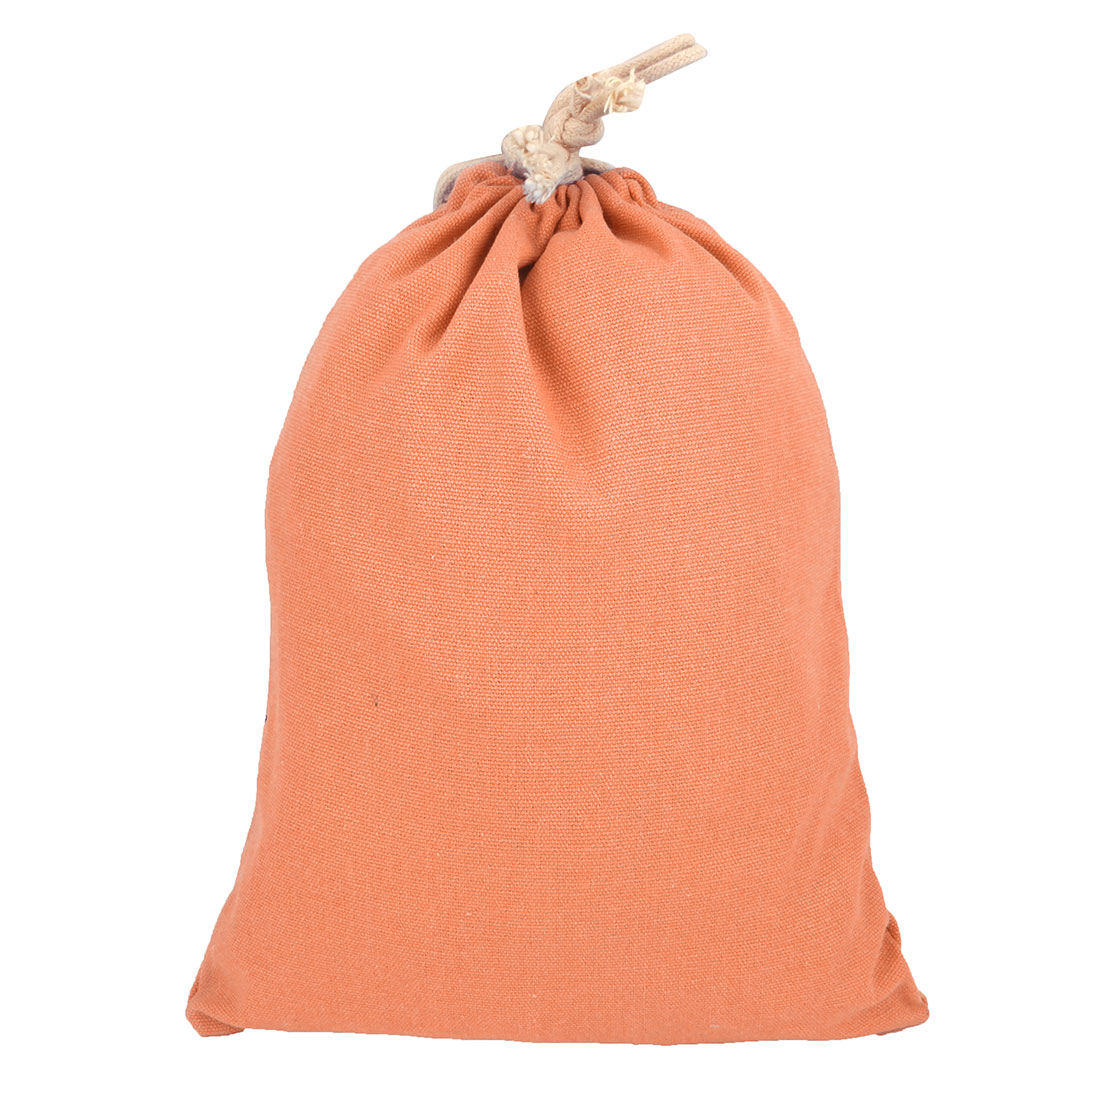 Travelling Canvas Drawstring String Pouch Storage Packing Gift Toe Bag Orange